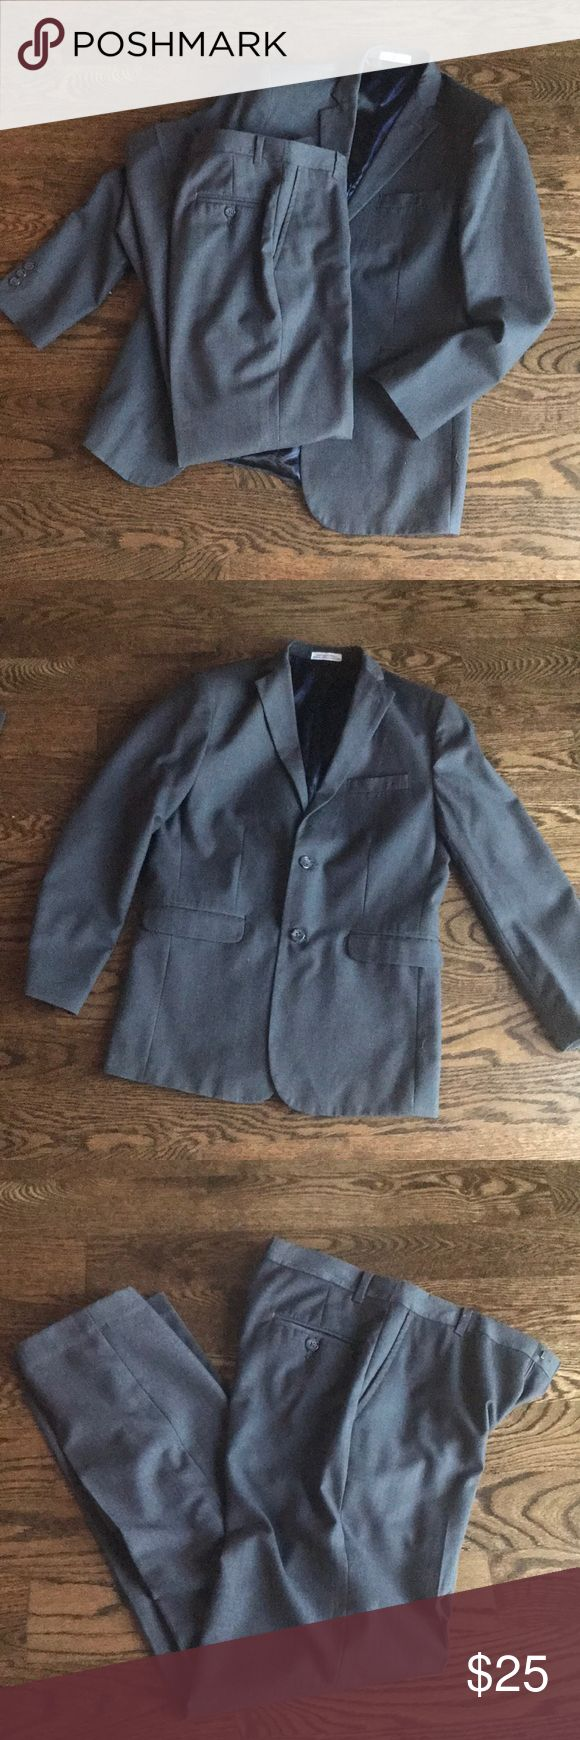 Boys charcoal gray suit 2 piece Izod suit set. Jacket is size 16 regular and pants are 16 slim. Charcoal gray color. Small area where Inseam stitching is loosening-easy fix (shown in last photo) Izod Other